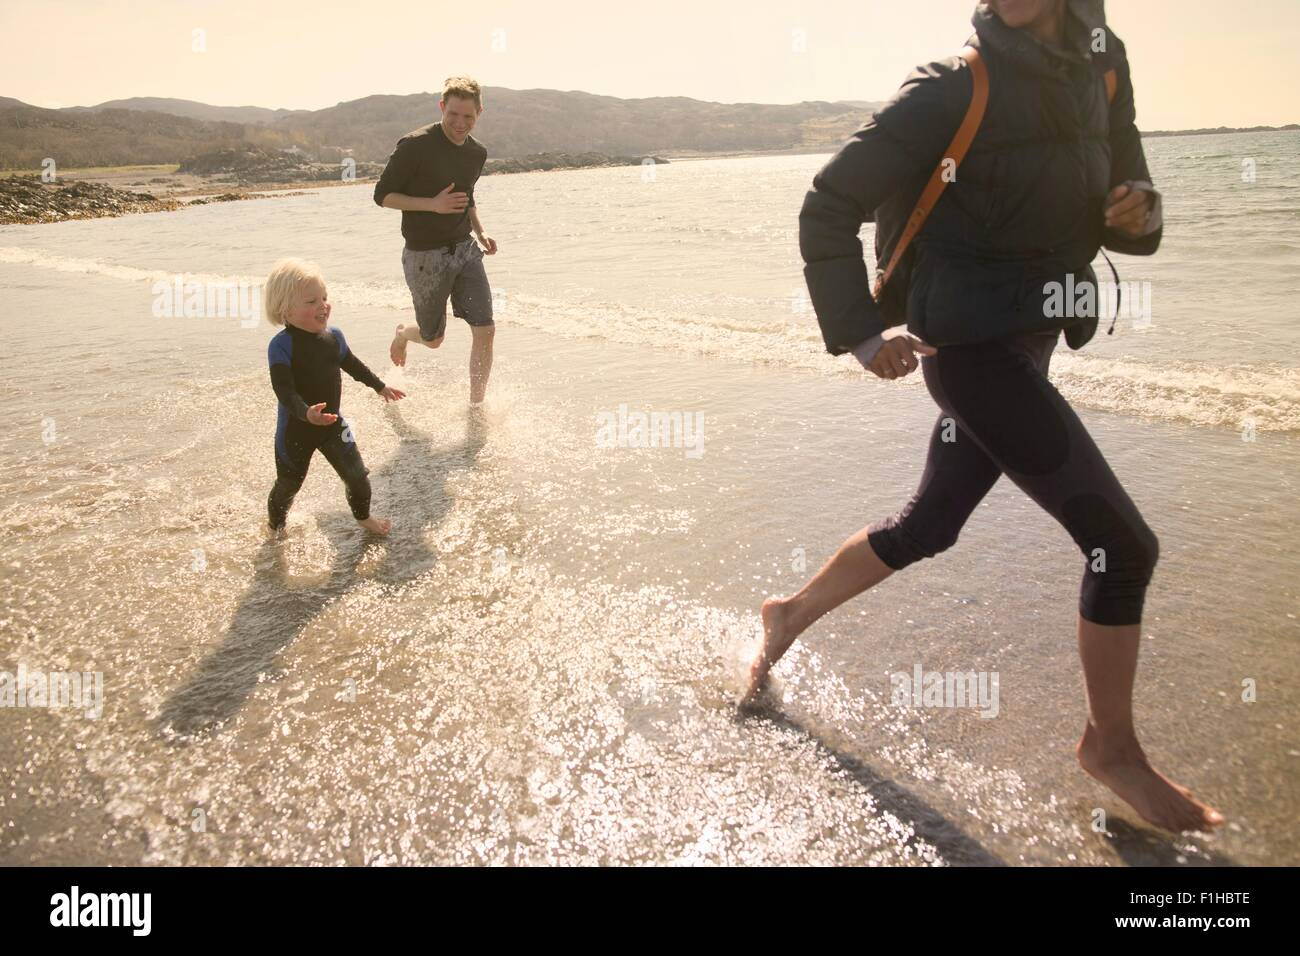 Family running on beach, Loch Eishort, Isle of Skye, Hebrides, Scotland - Stock Image